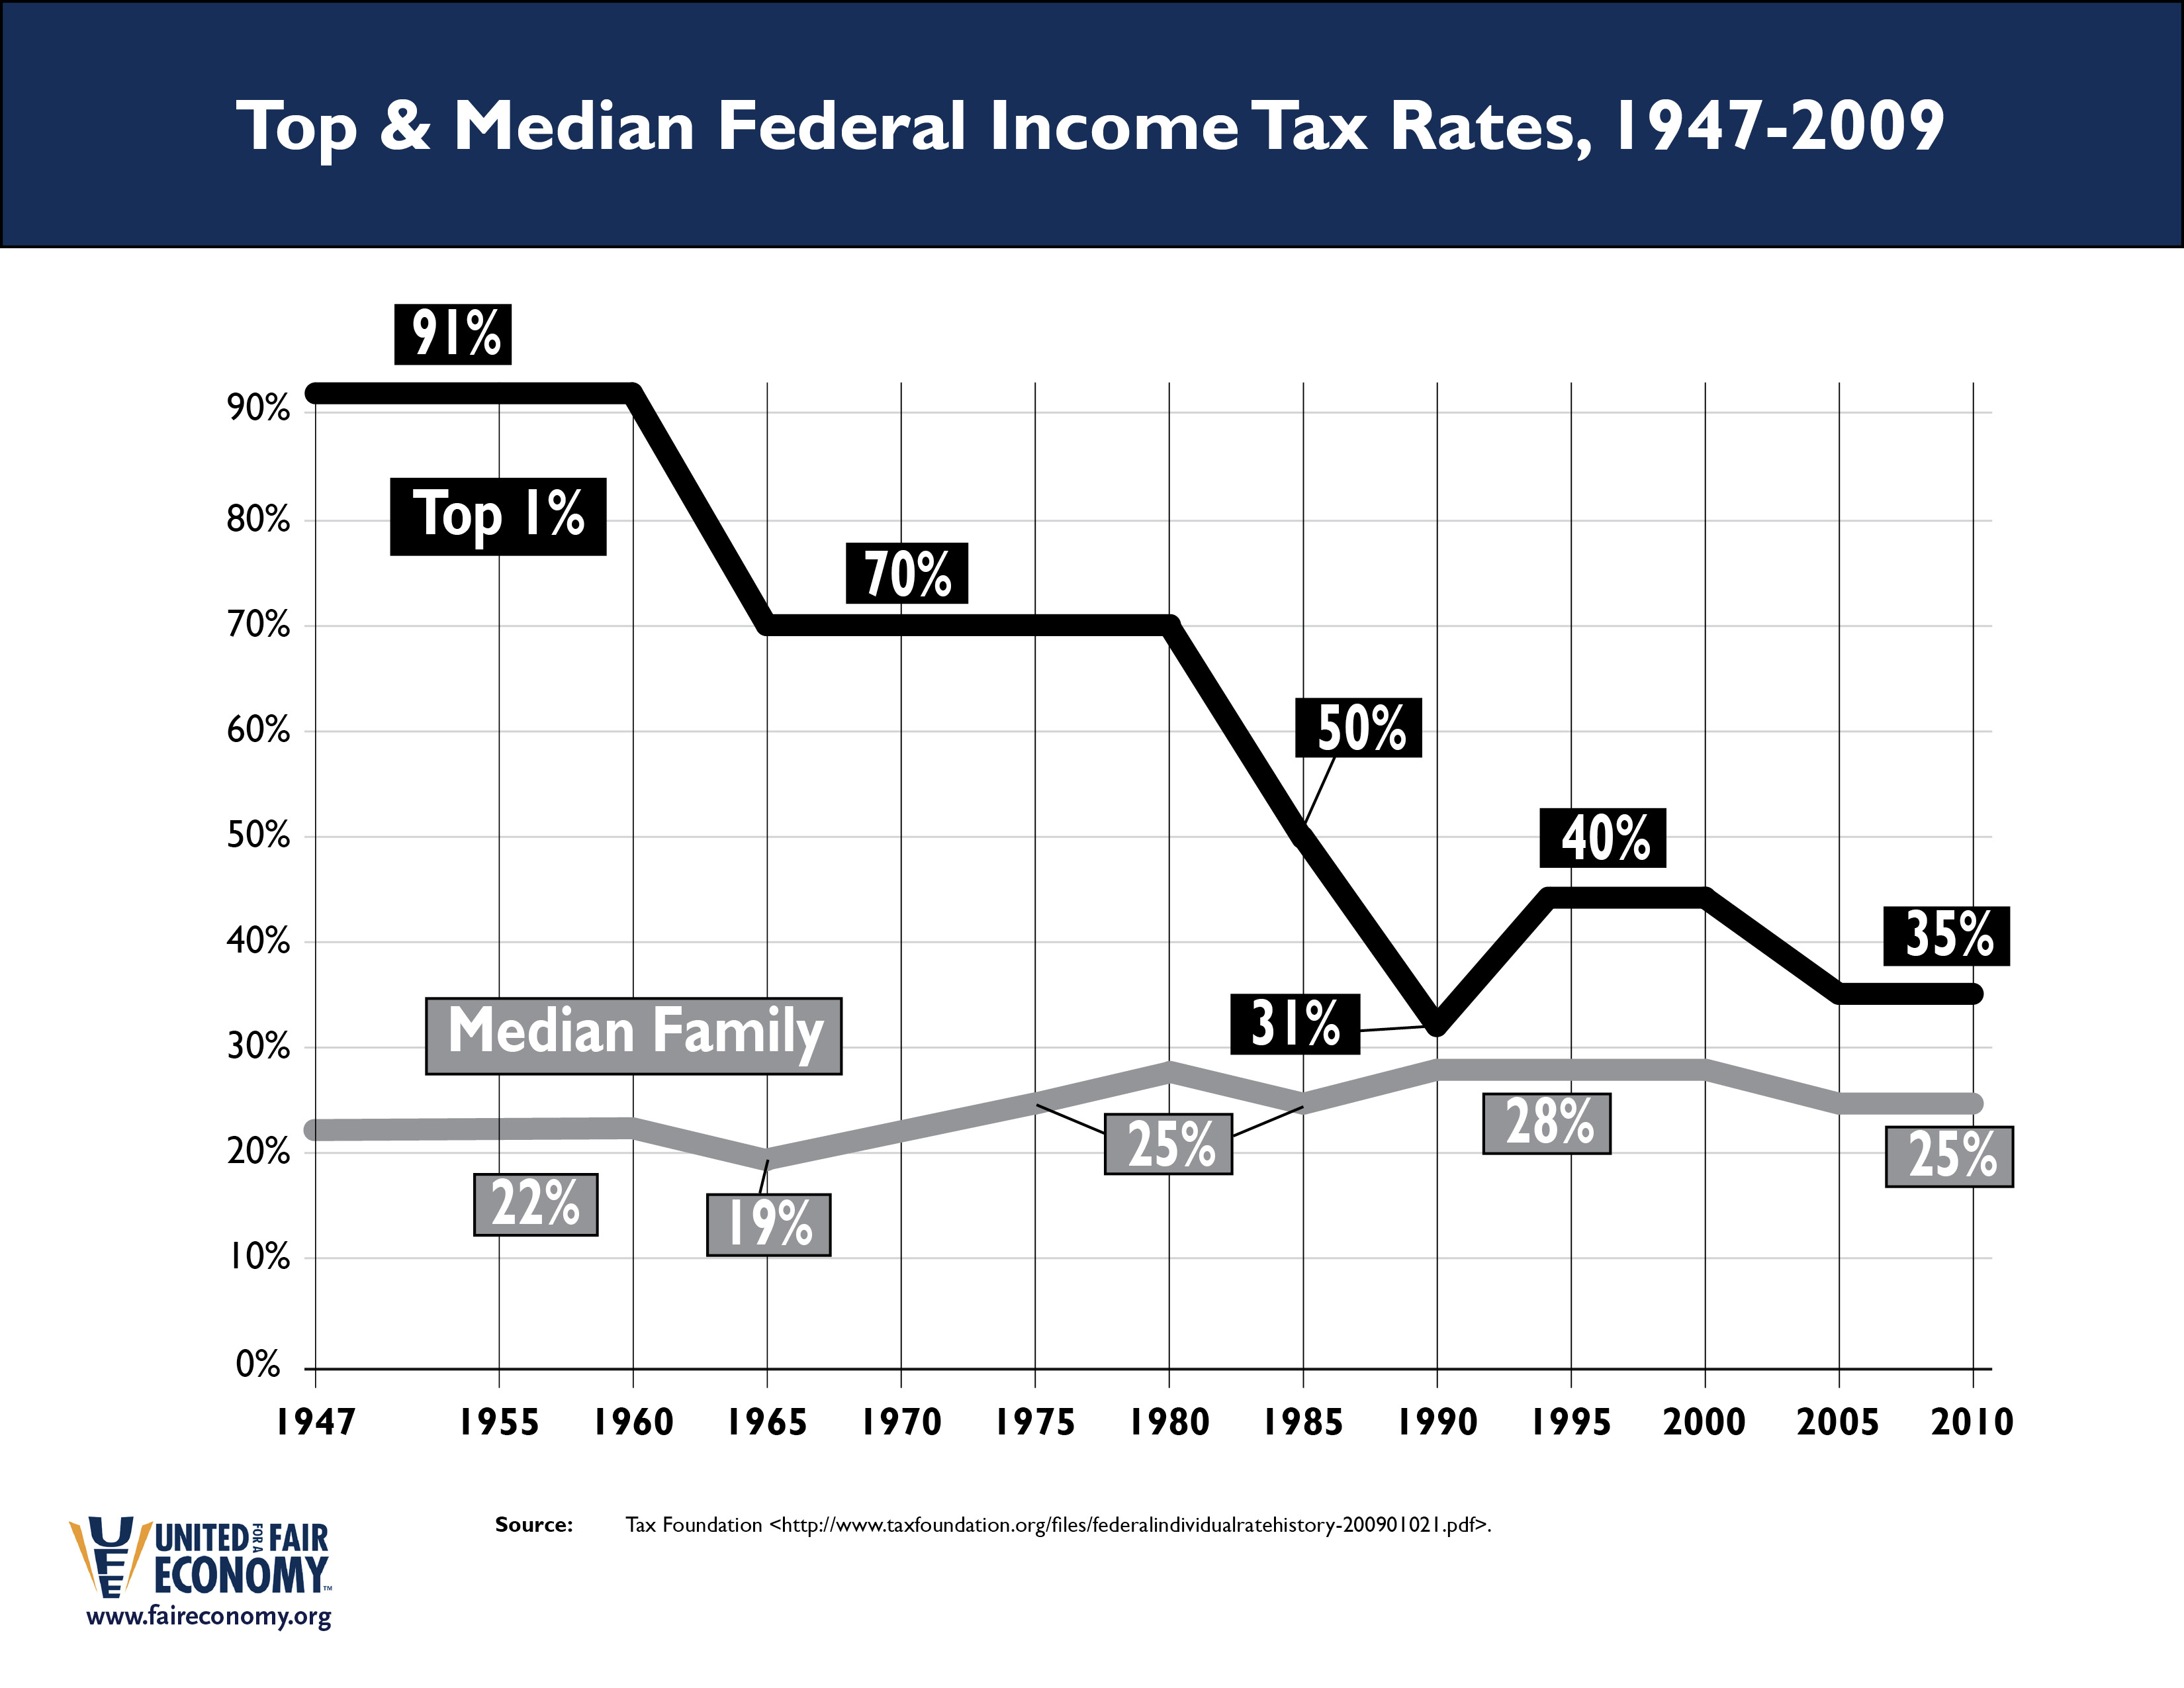 Fed_Tax_Rates_for_Top___Median.jpg